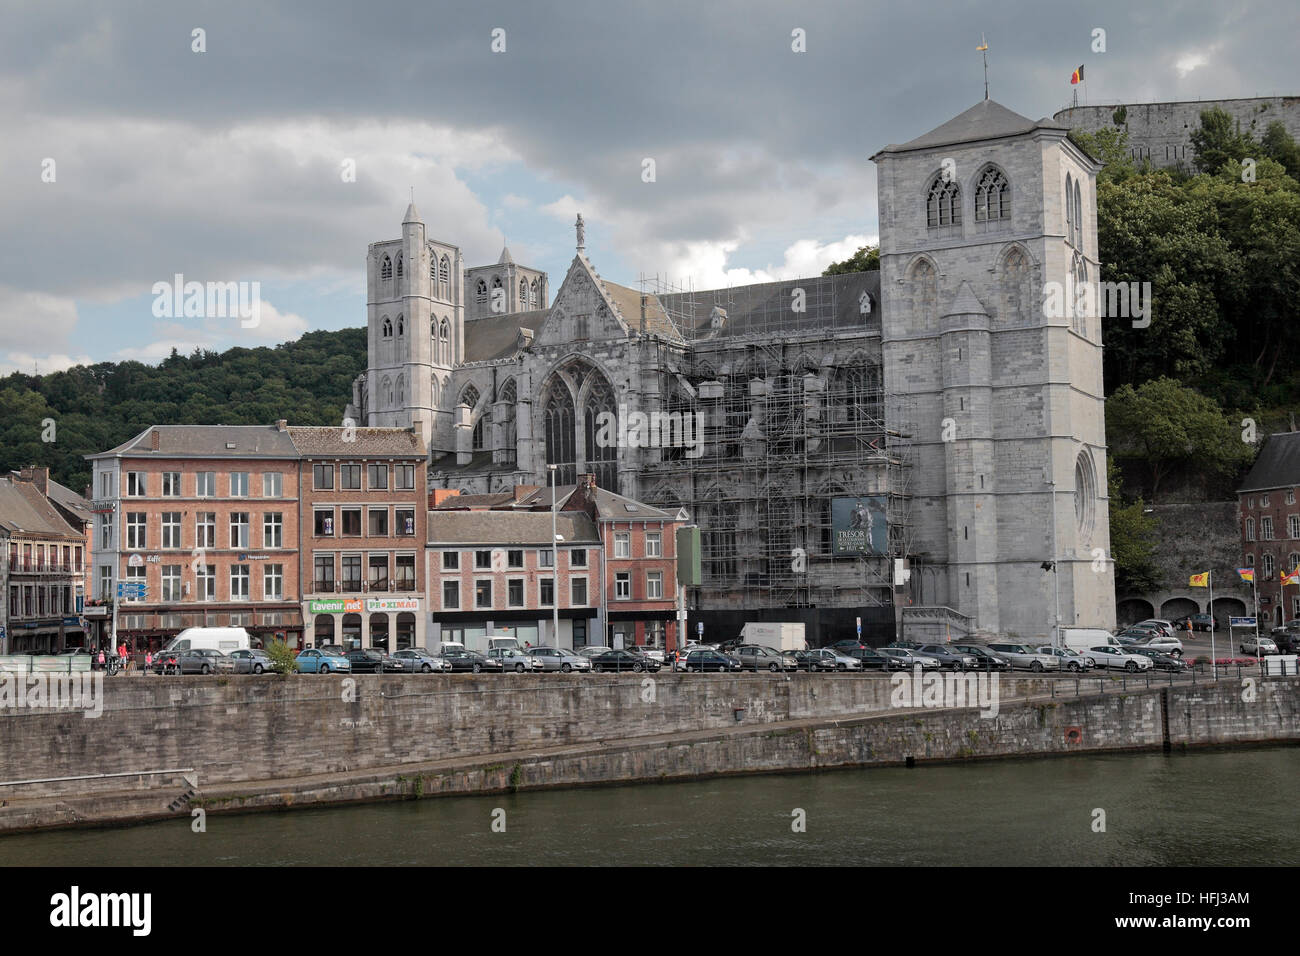 The Collégiale Notre-Dame et Saint-Domitien in Huy, Walloon Region, Province of Liege, Belgium. Stock Photo